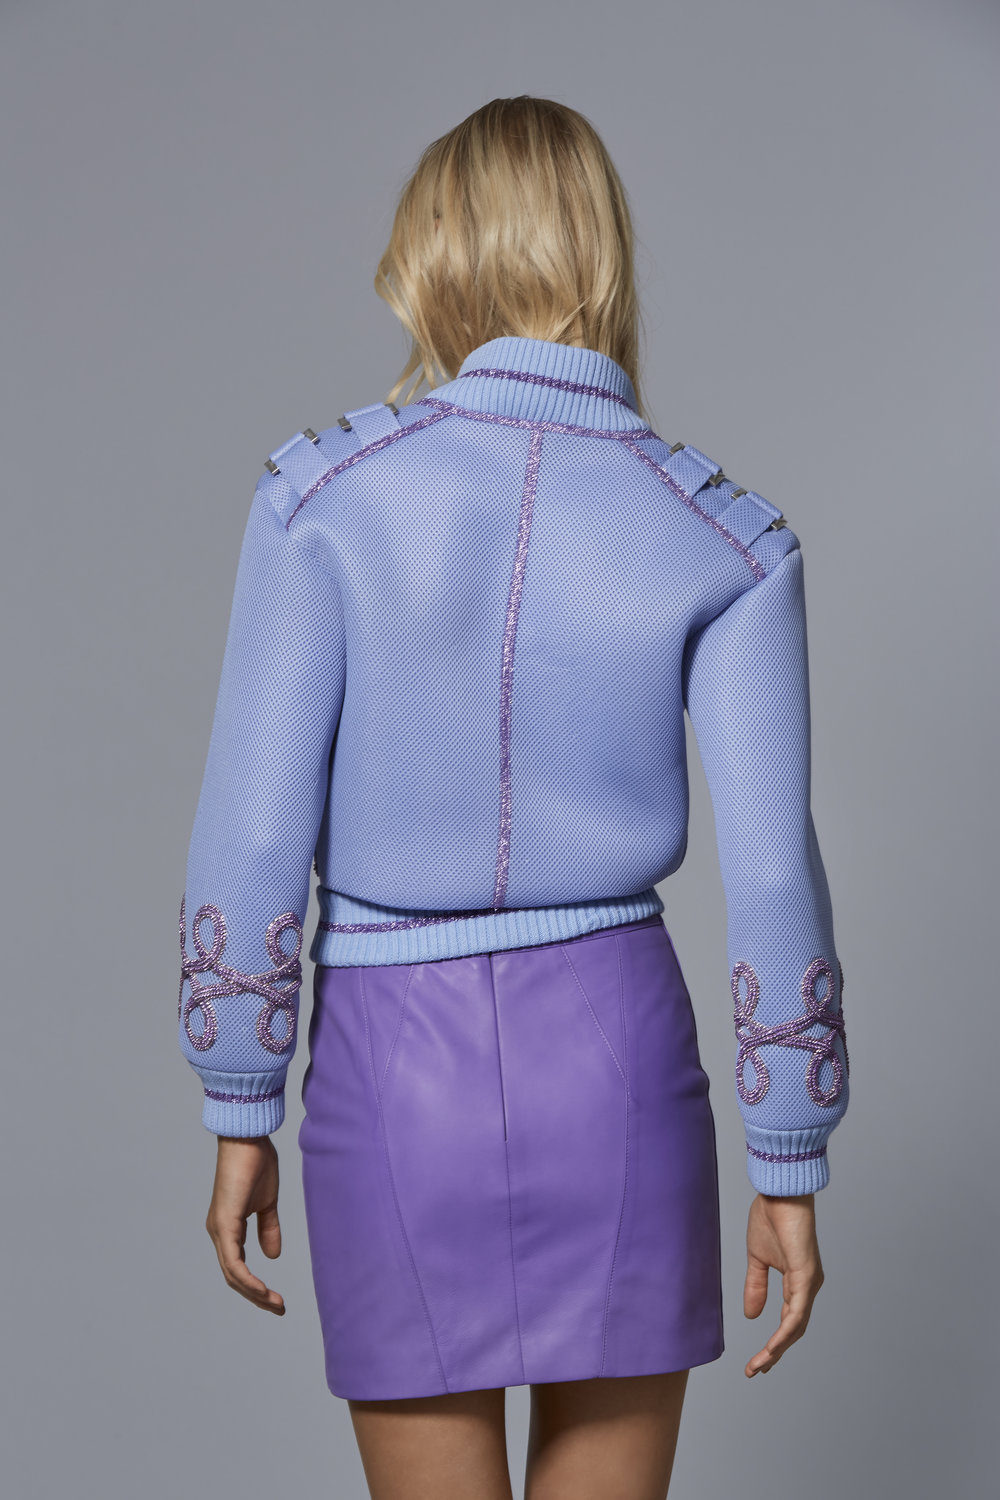 CLAUDIO CINA   LOOK 6: BACK VIEW  Mesh Neoprene Bomber with Embroidered Crystal Cording  Leather Mini Skirt